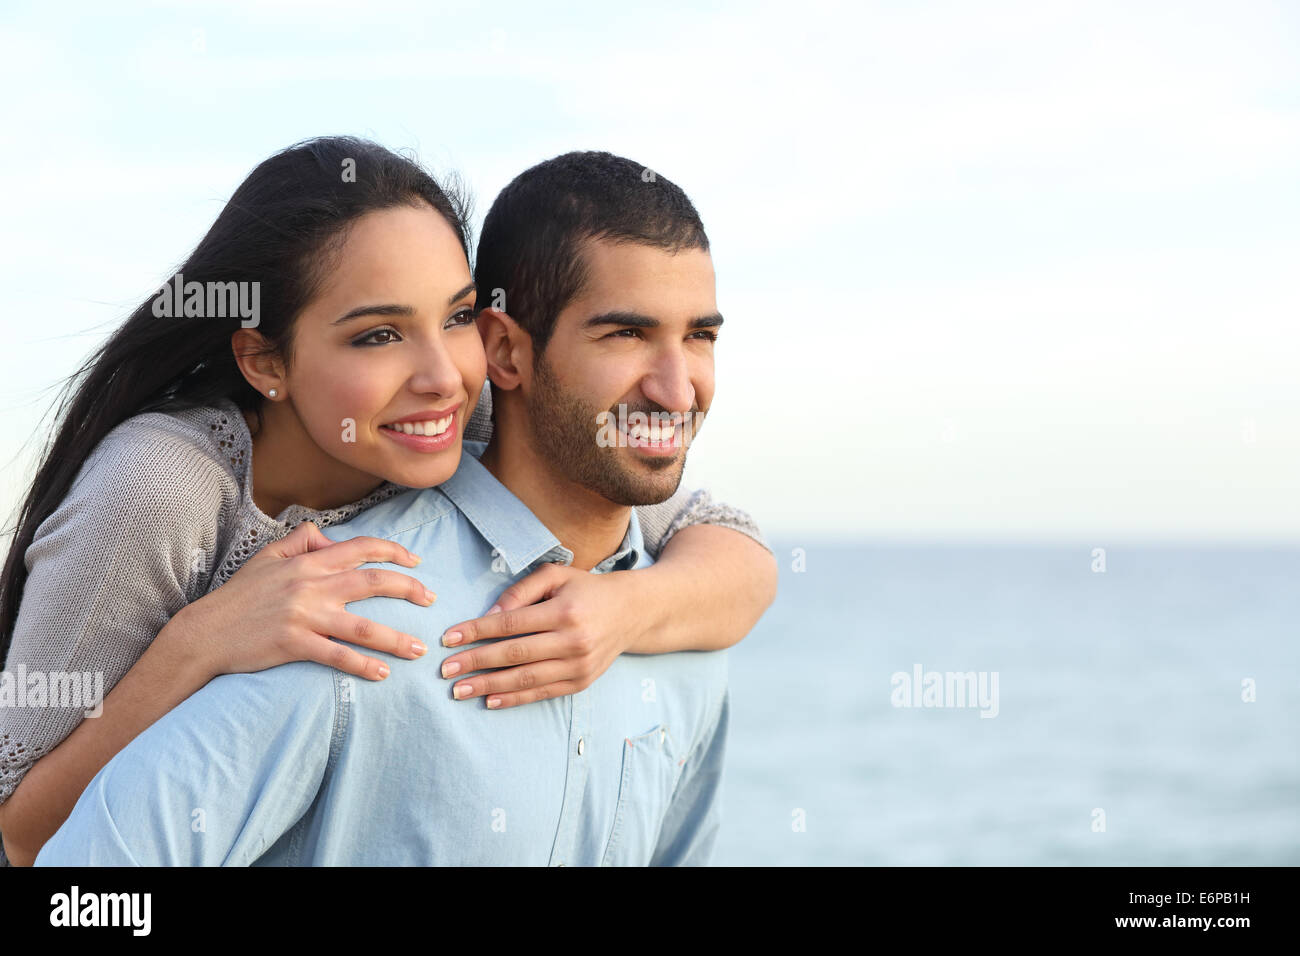 Arab couple flirting piggyback in love on the beach with the sea in the background - Stock Image